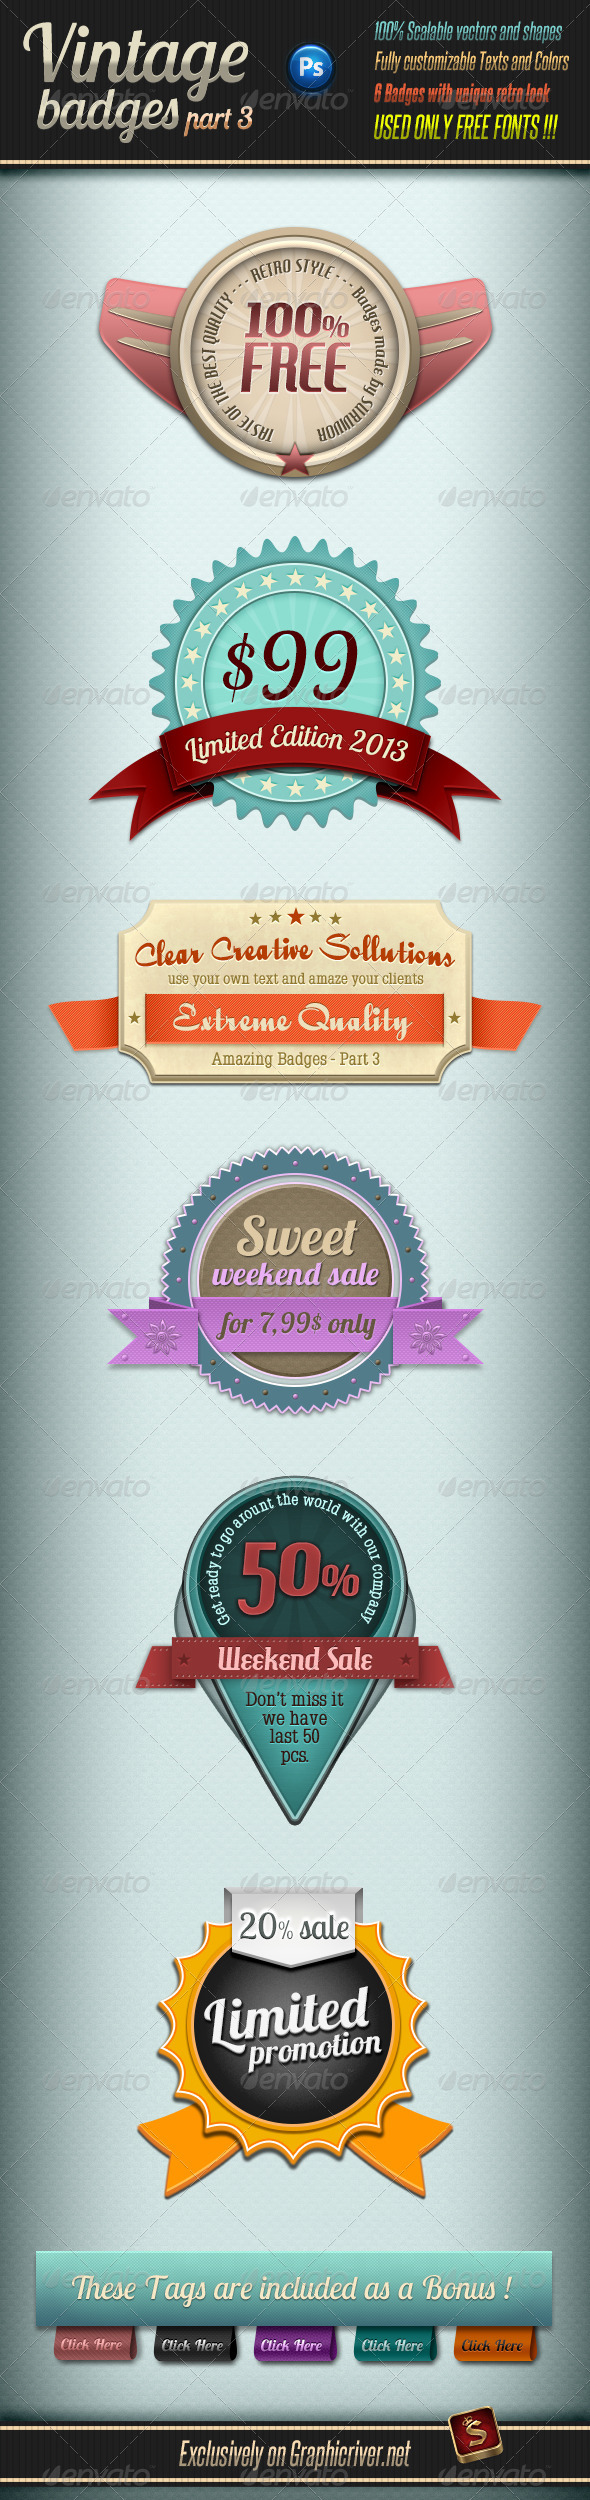 Retro Vintage Badges - Part 3 - Badges & Stickers Web Elements